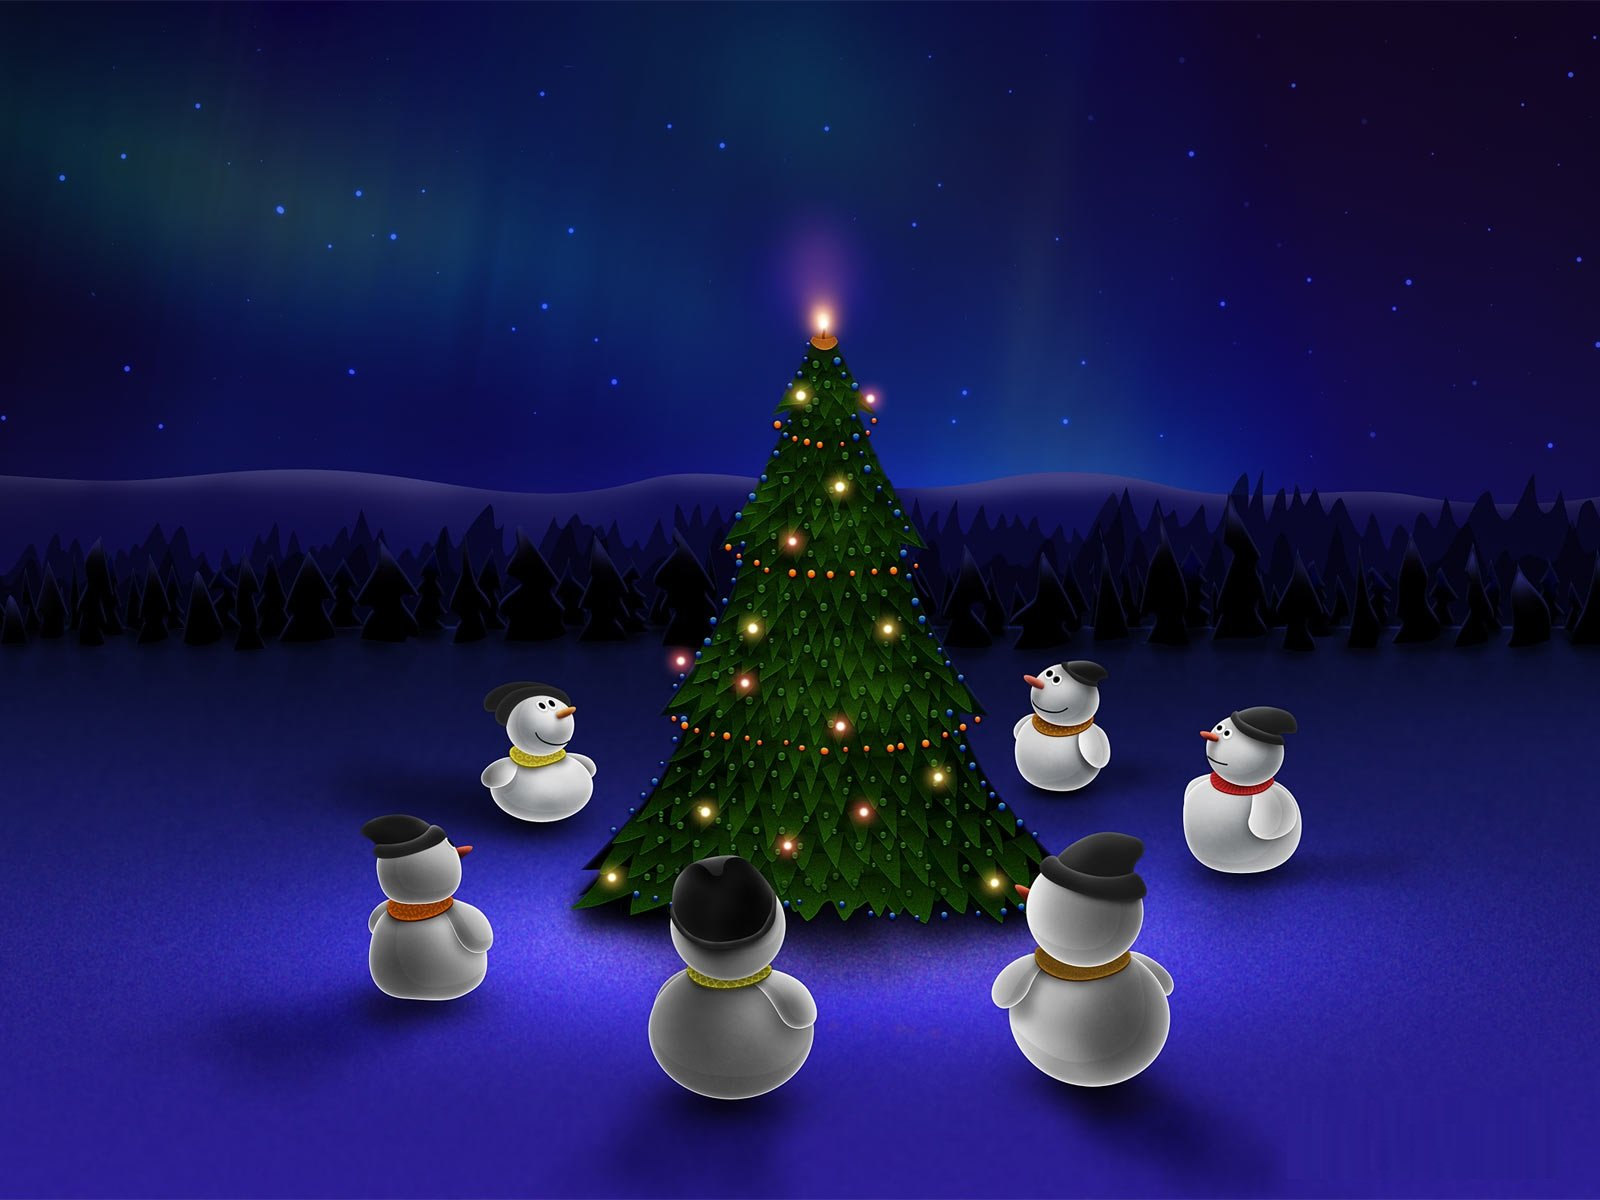 wallpapers holidays christmas live christmas desktop wallpaper 1600x1200